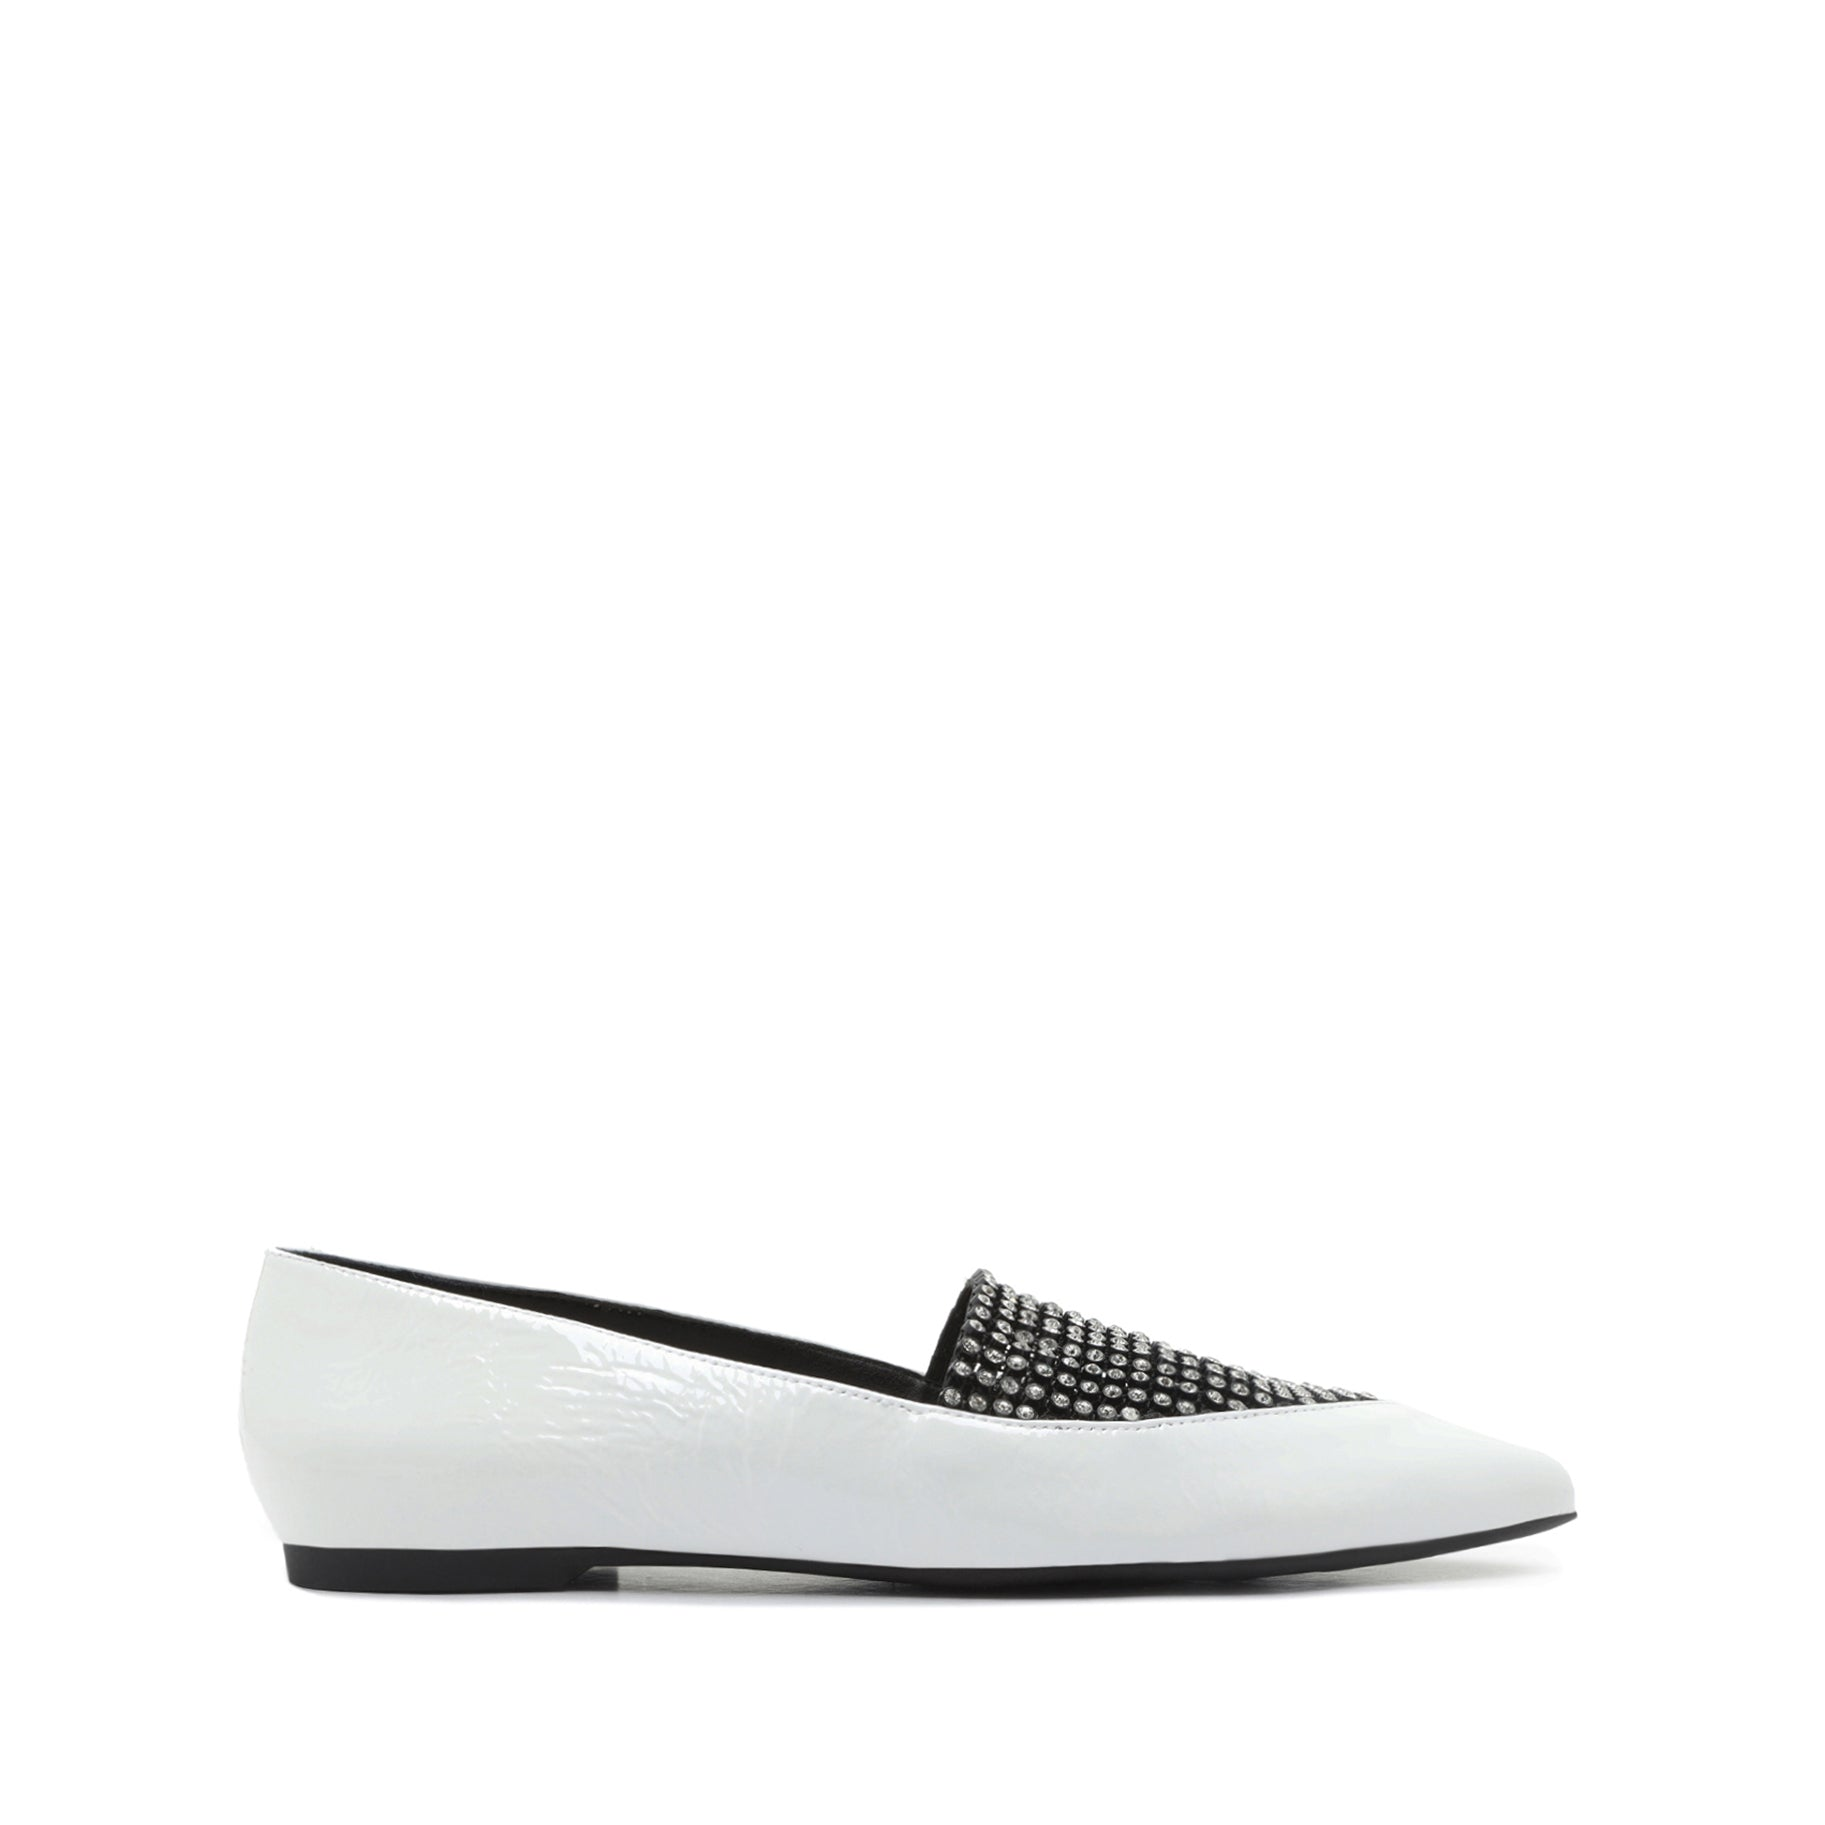 Sury Patent Leather Flat